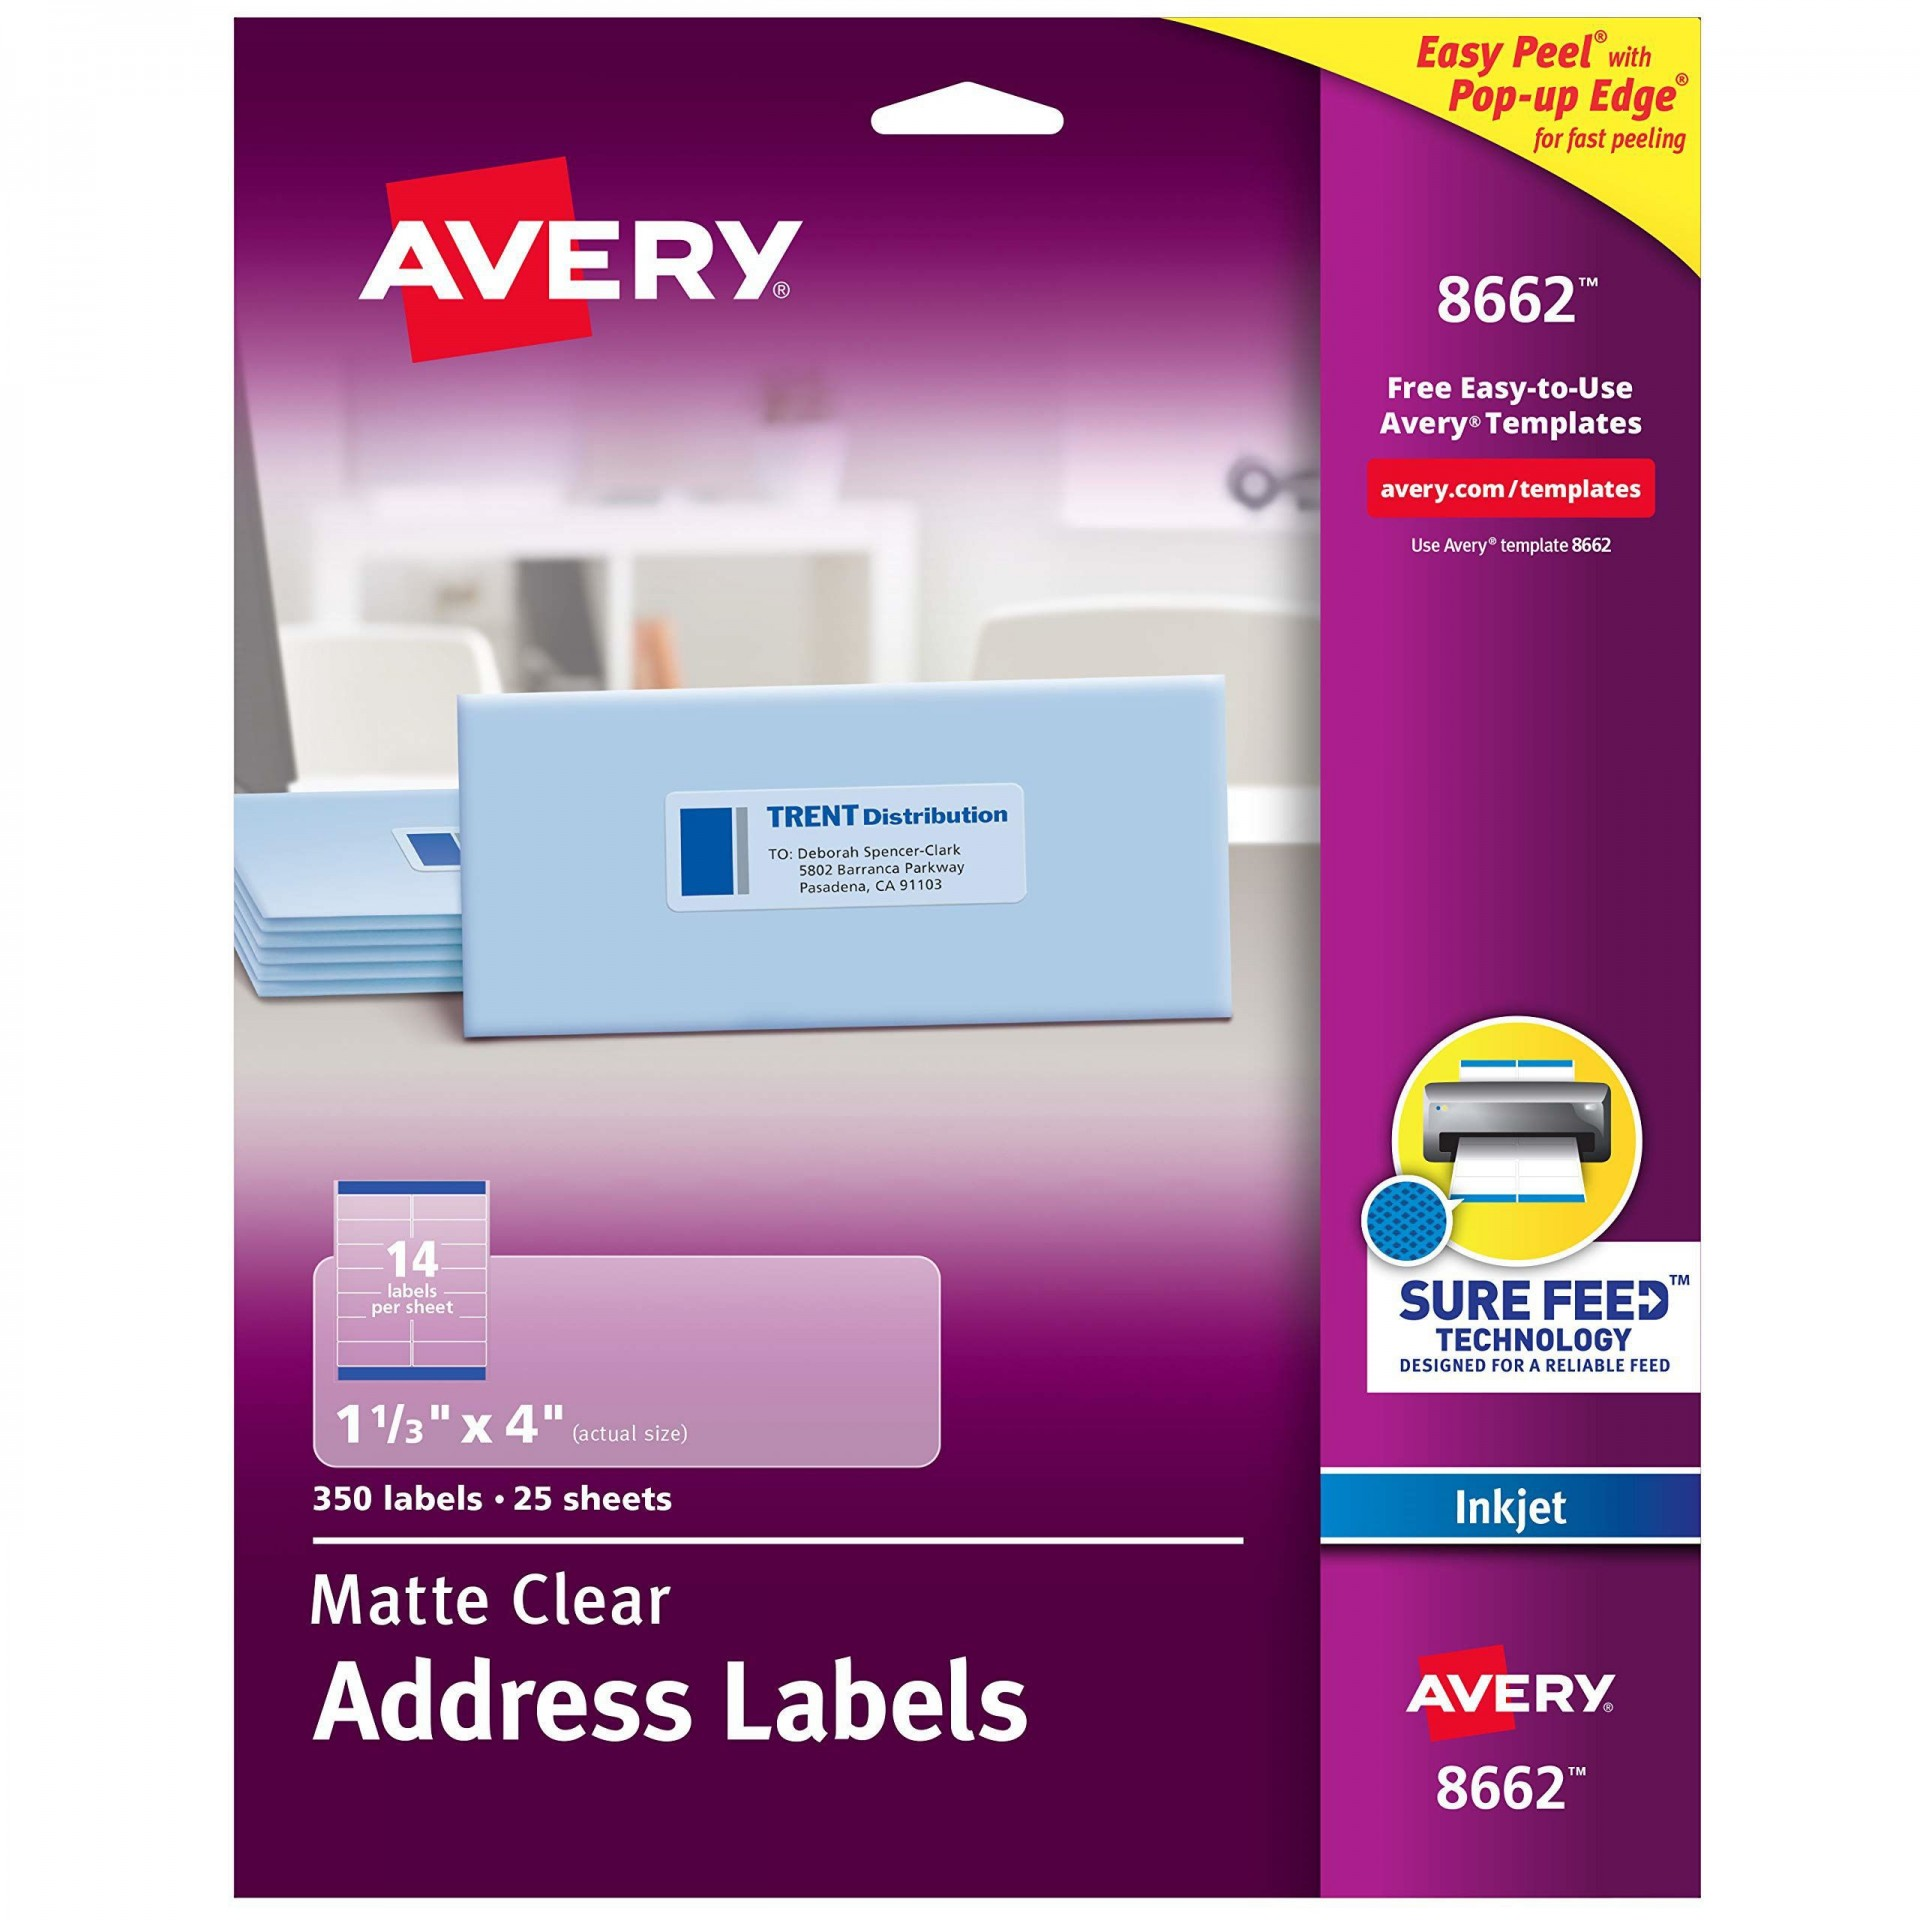 002 Stupendou Free Avery Mailing Label Template Idea  Templates Addres For Mac 8160 51631920